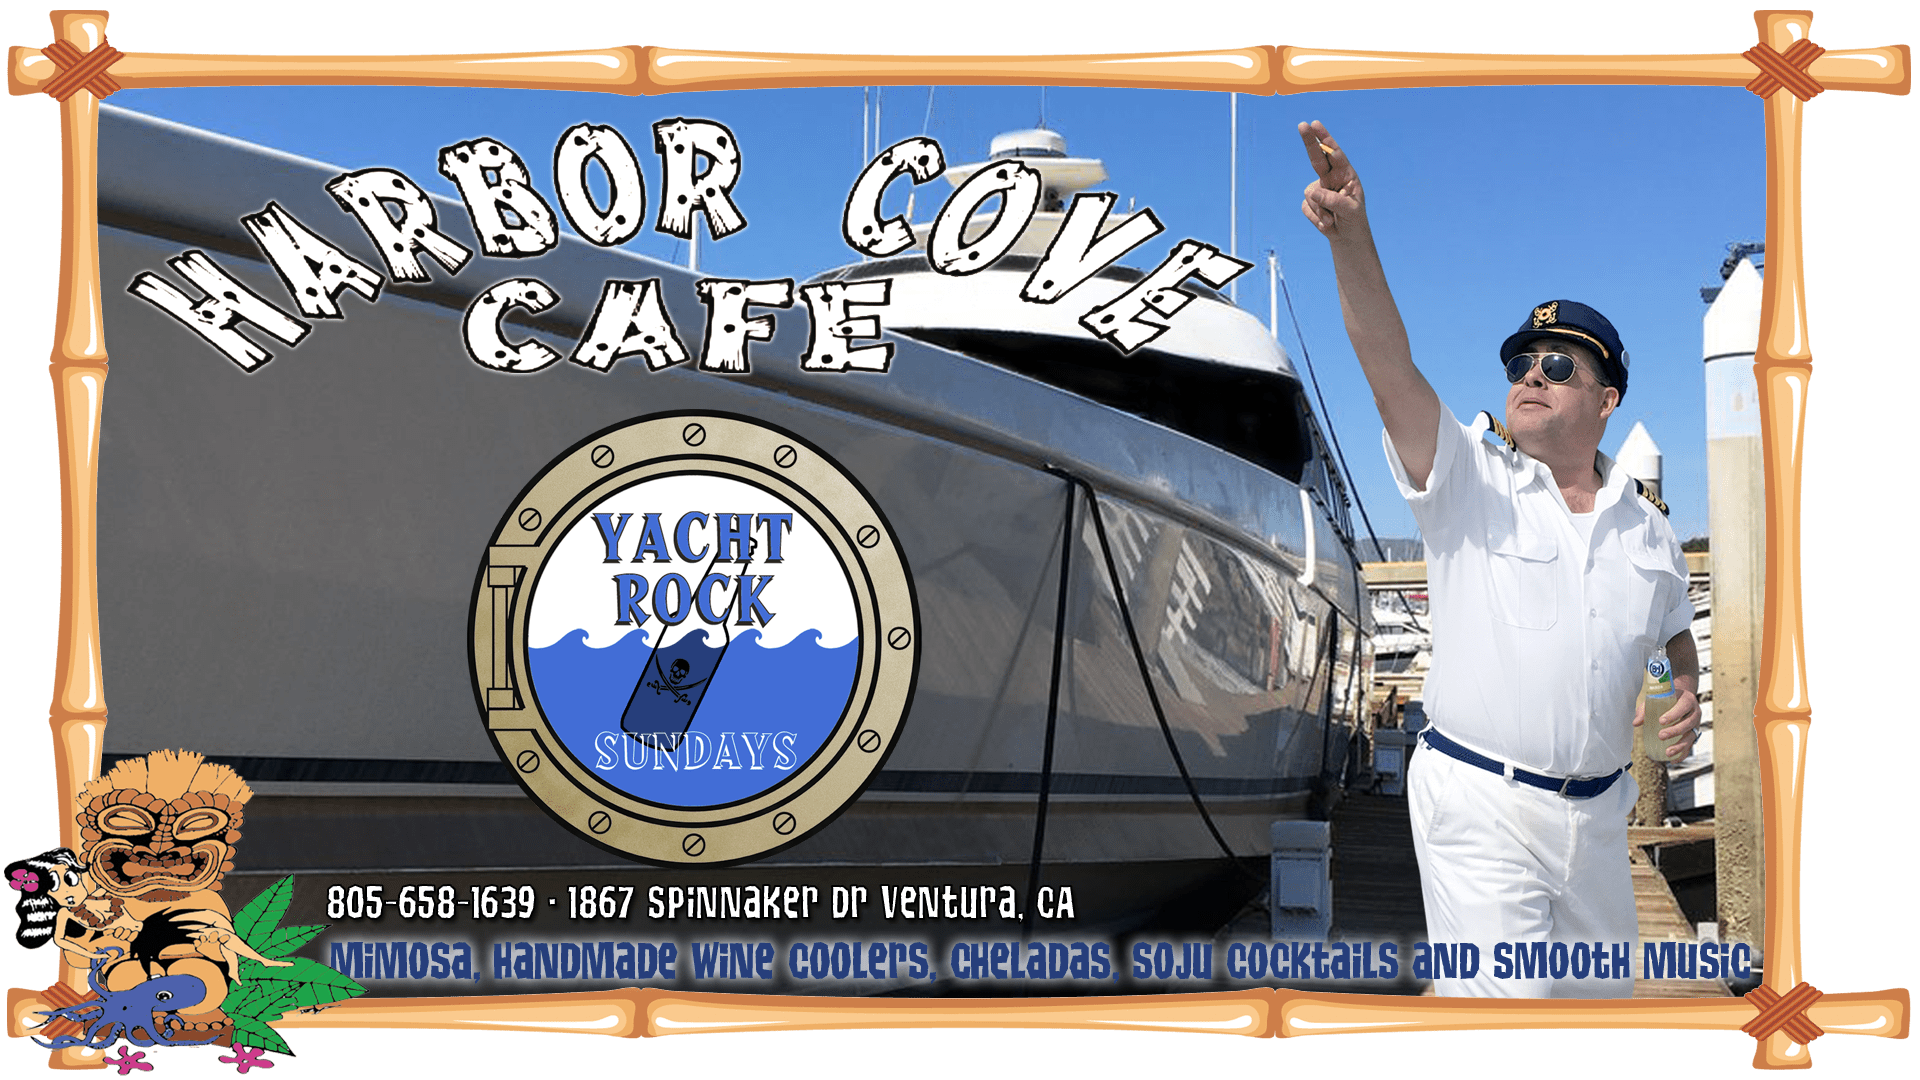 Harbor Cove Cafe Yacht Rock on Sundays!